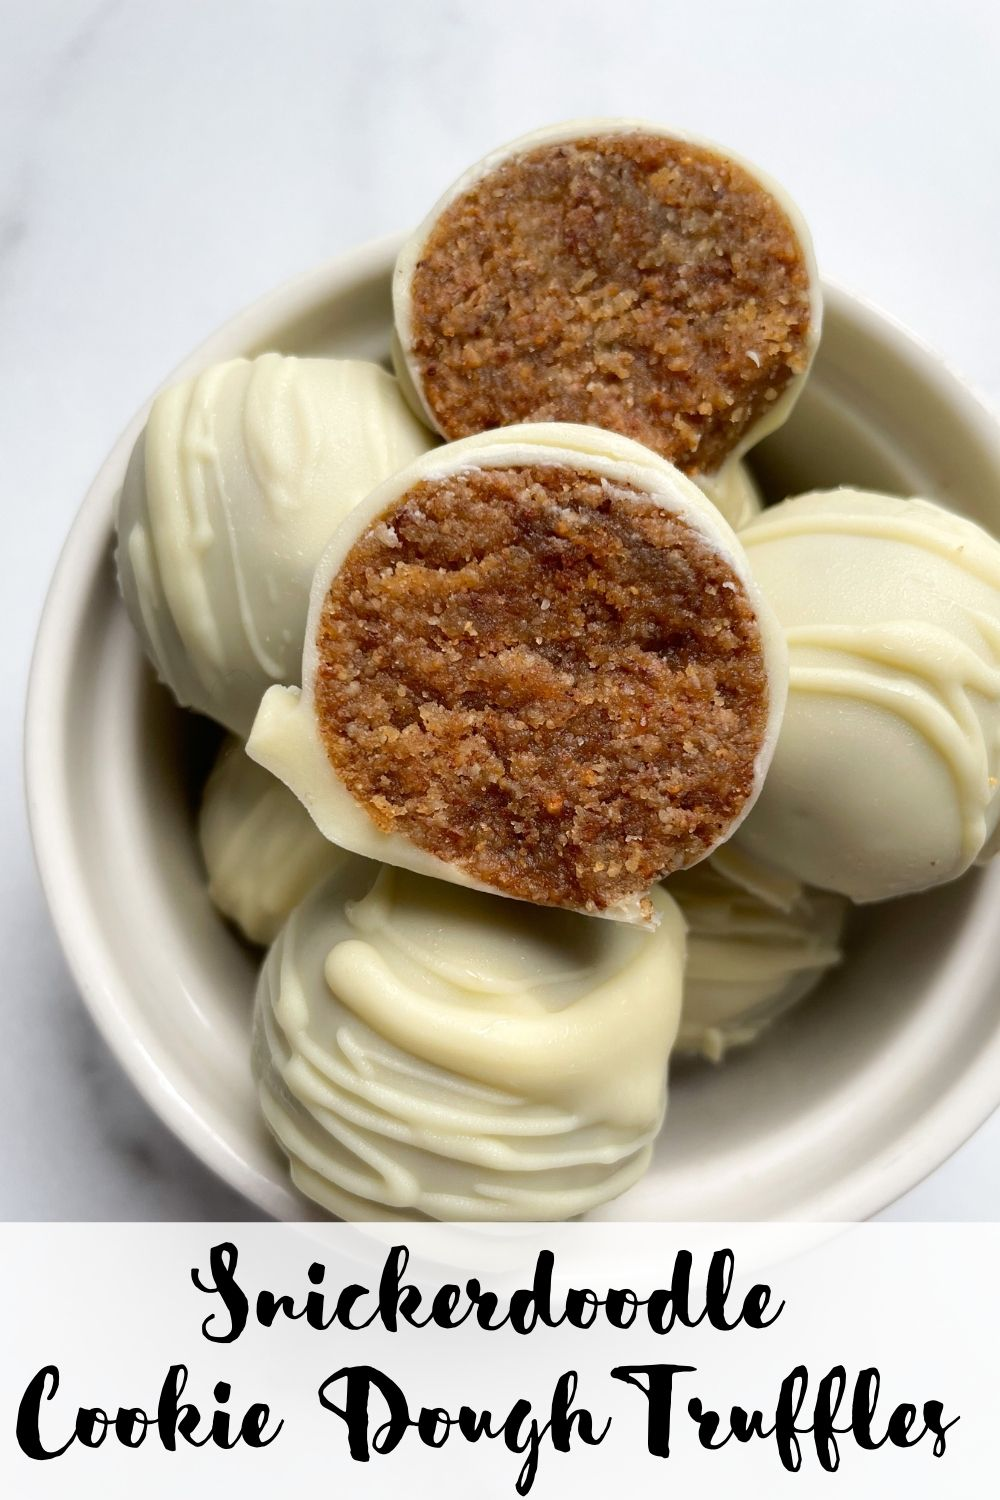 snickerdoodle cookie dough truffles in a white bowl with text overlay